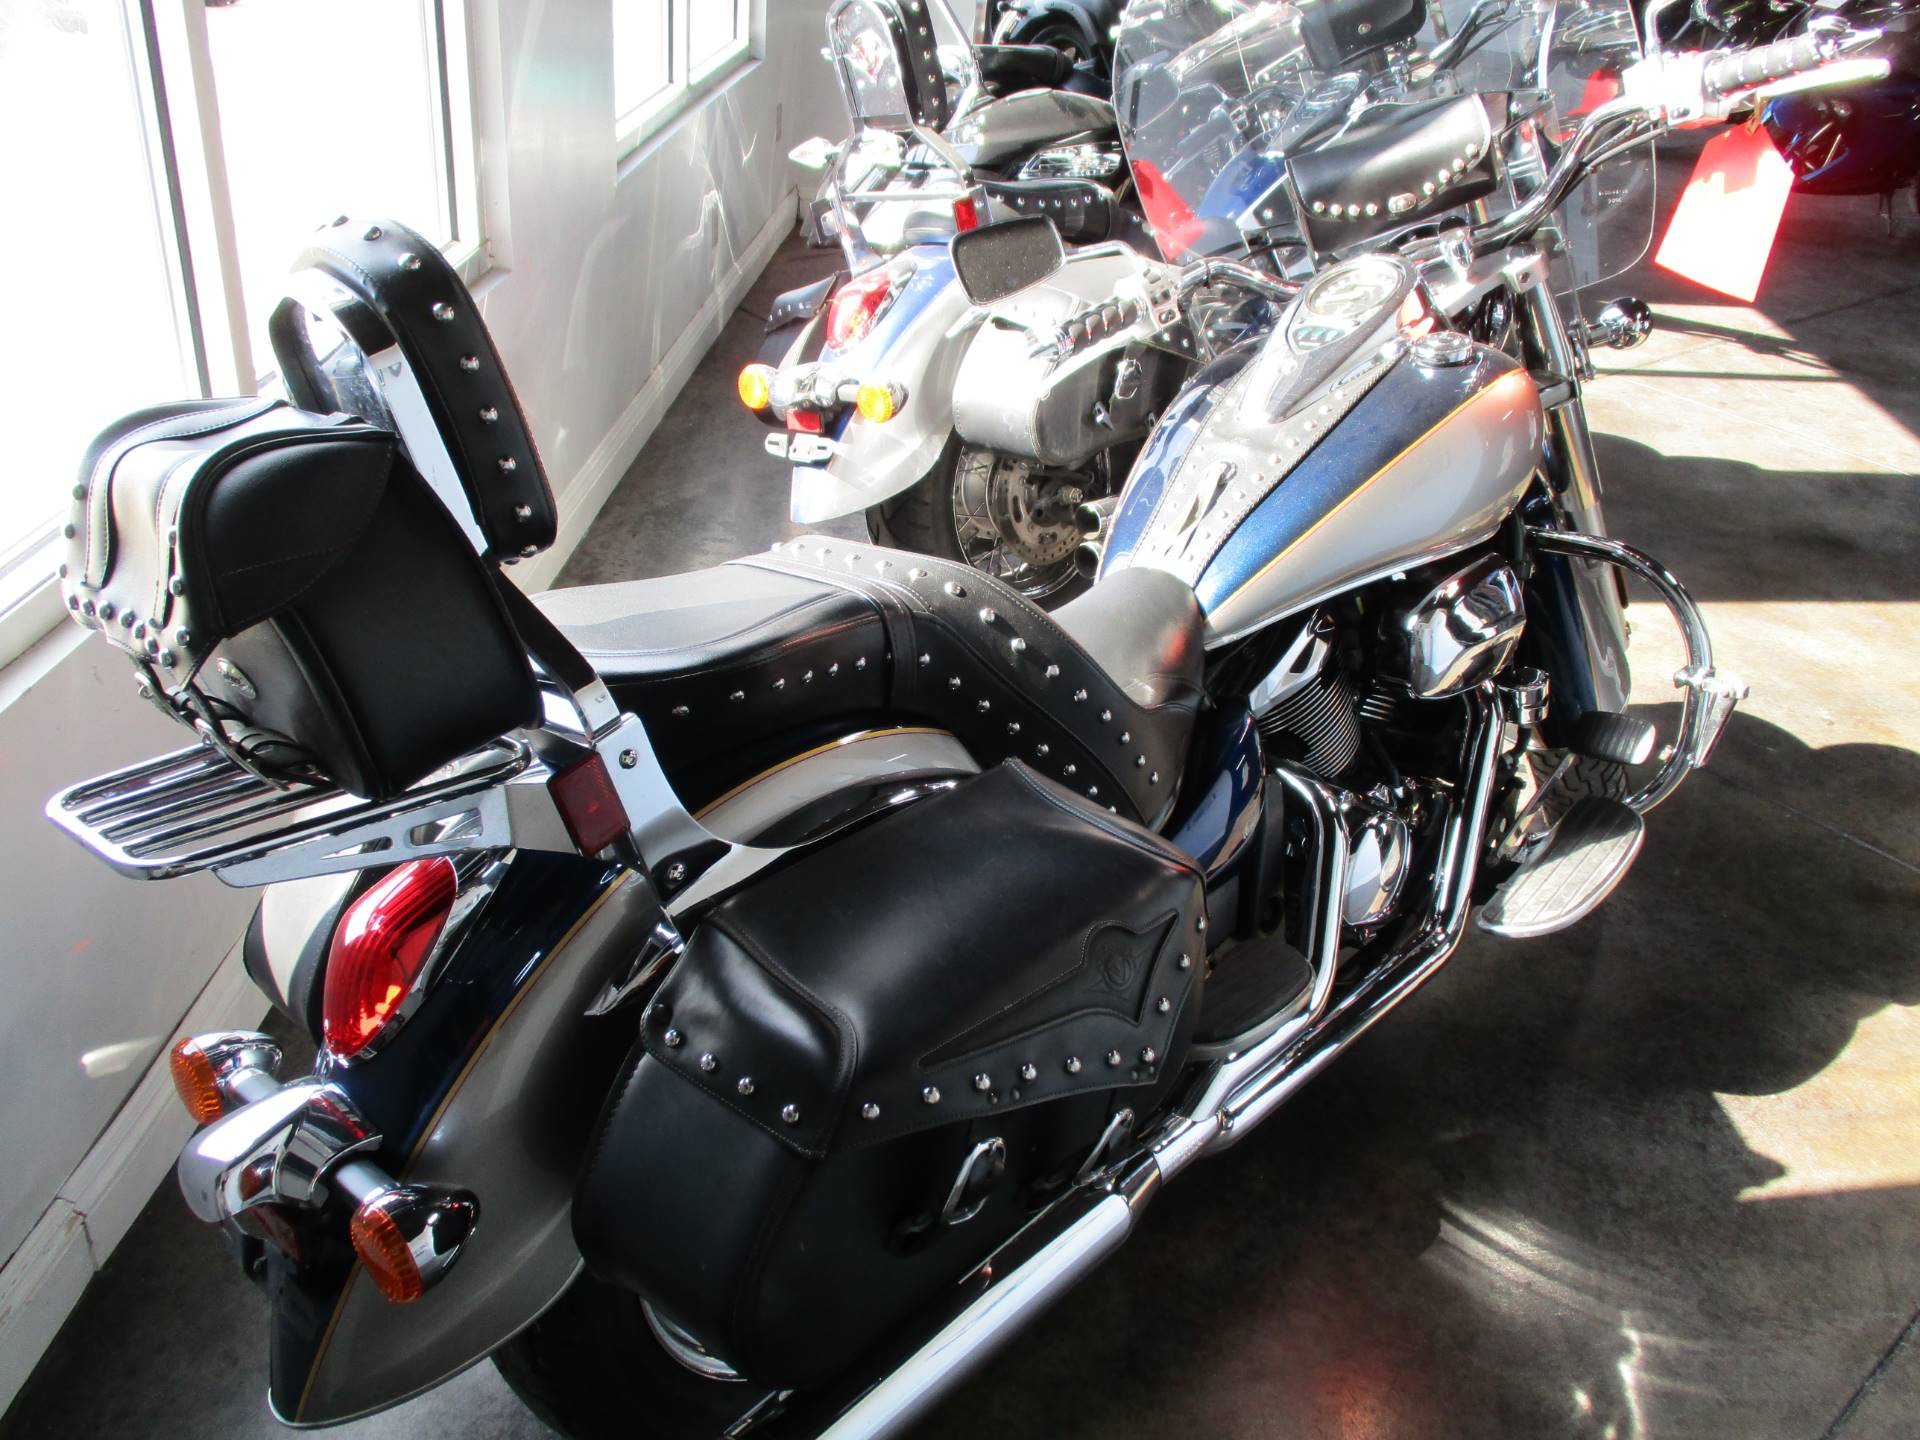 2006 Kawasaki 900 vulcan lt in Highland, Illinois